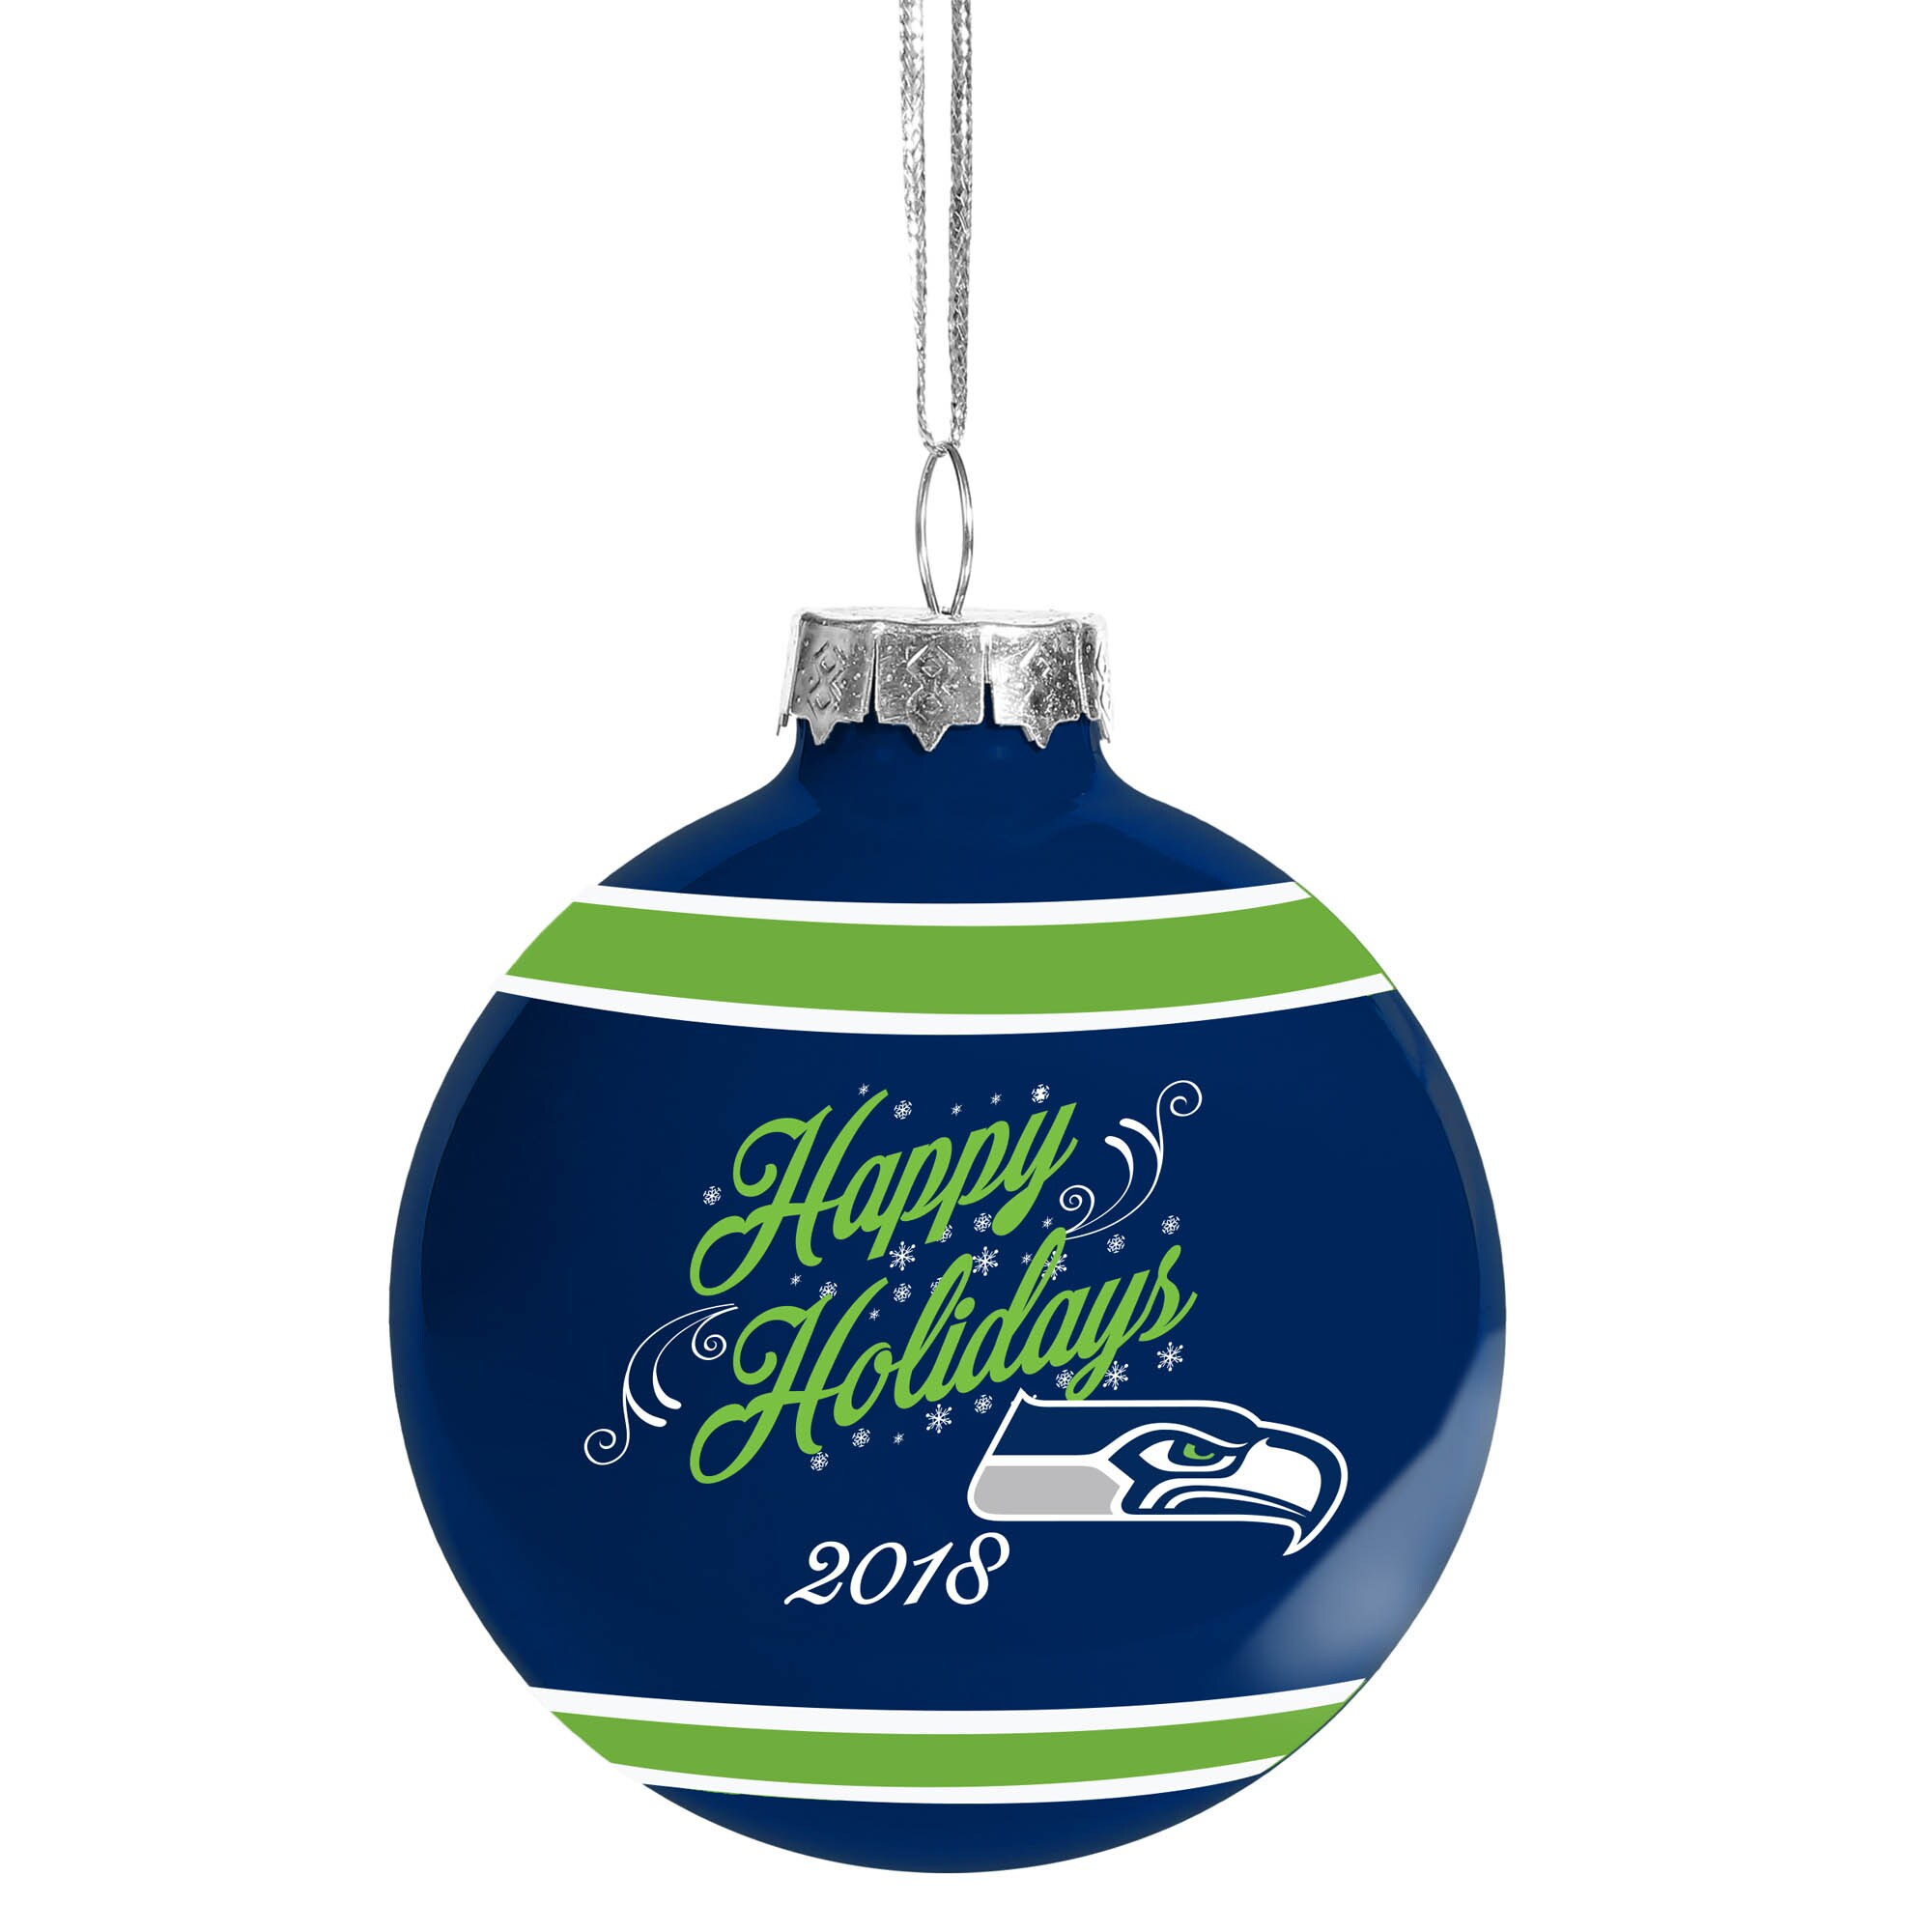 Seattle Seahawks 2018 Happy Holidays Glass Ball Ornament